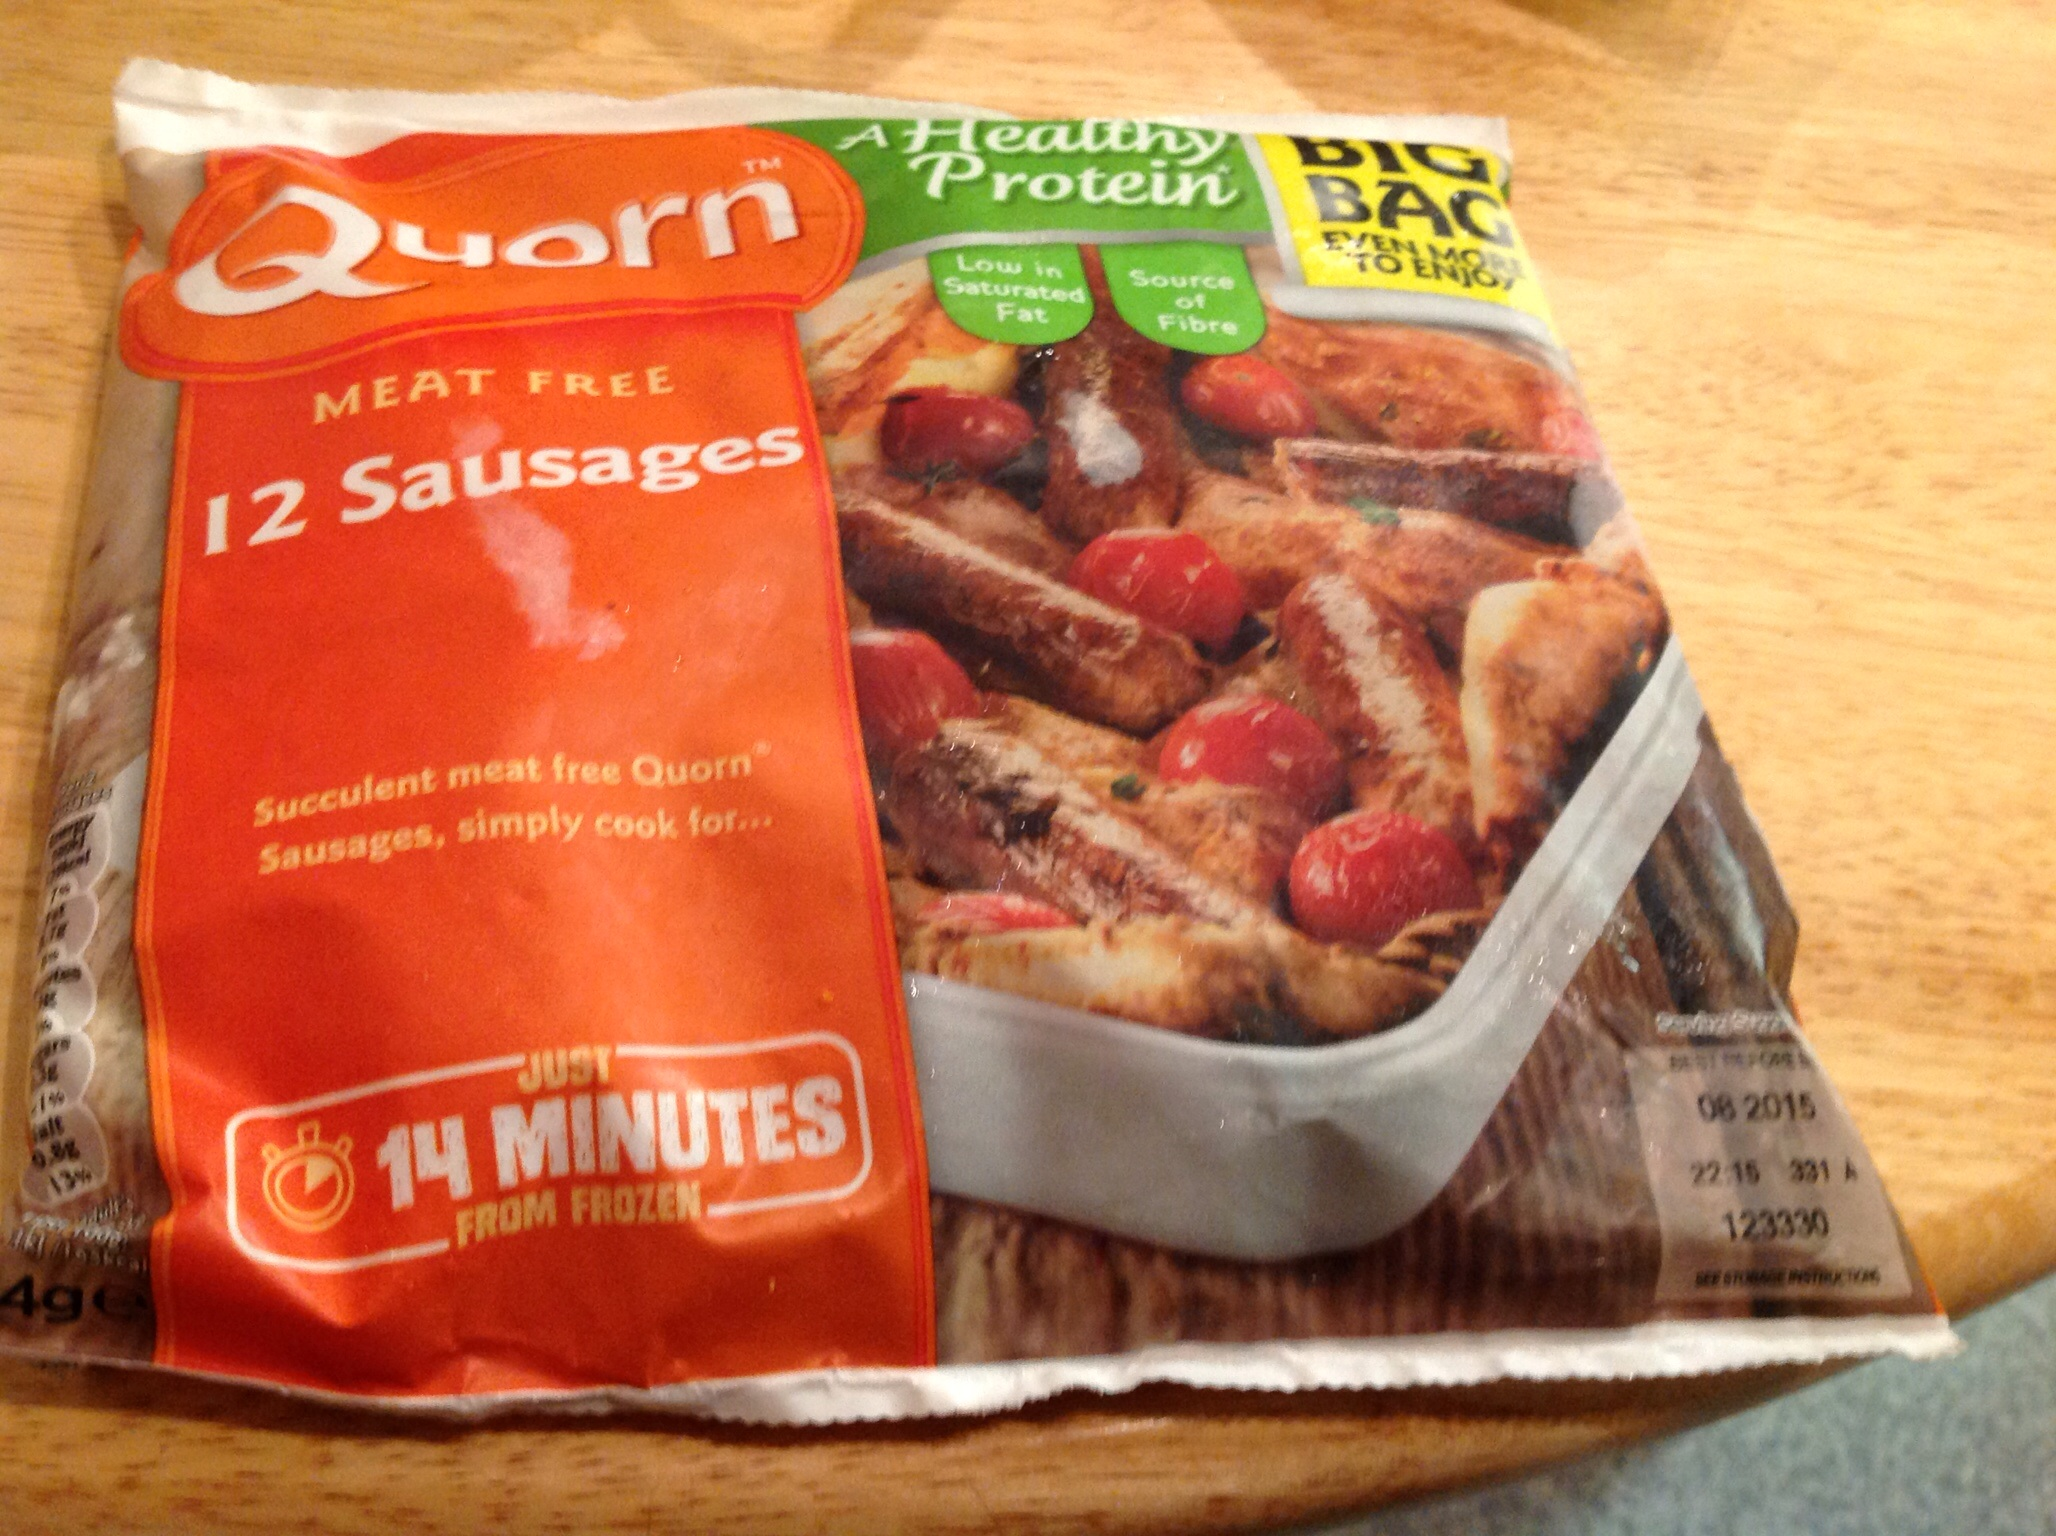 Quorn sausages-image.jpg